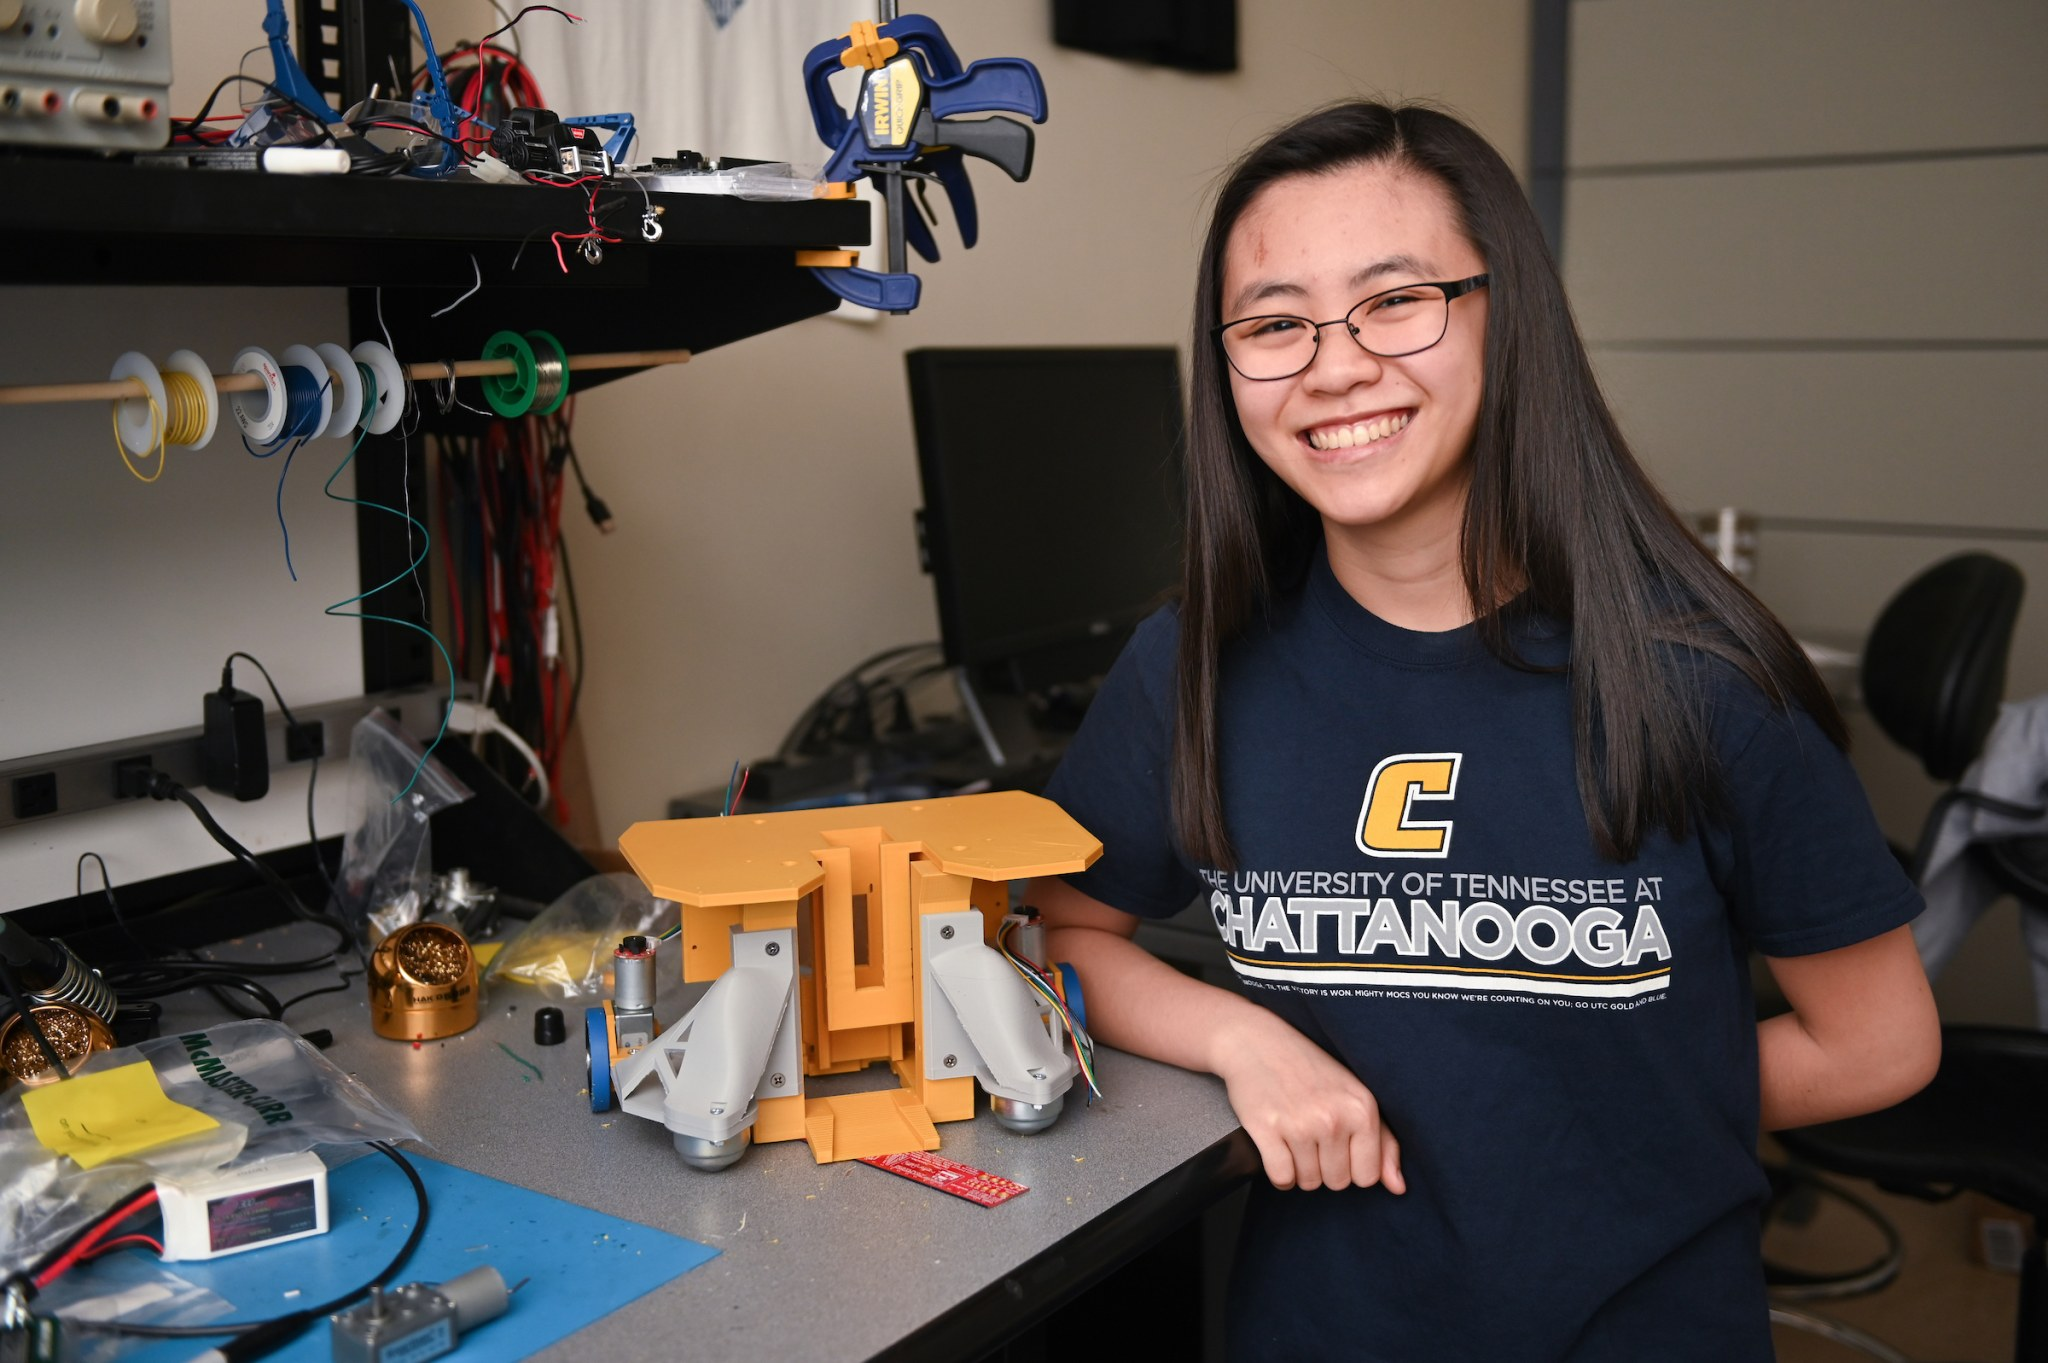 Caroline Lee attends one of the top electrical engineering schools in Tennessee